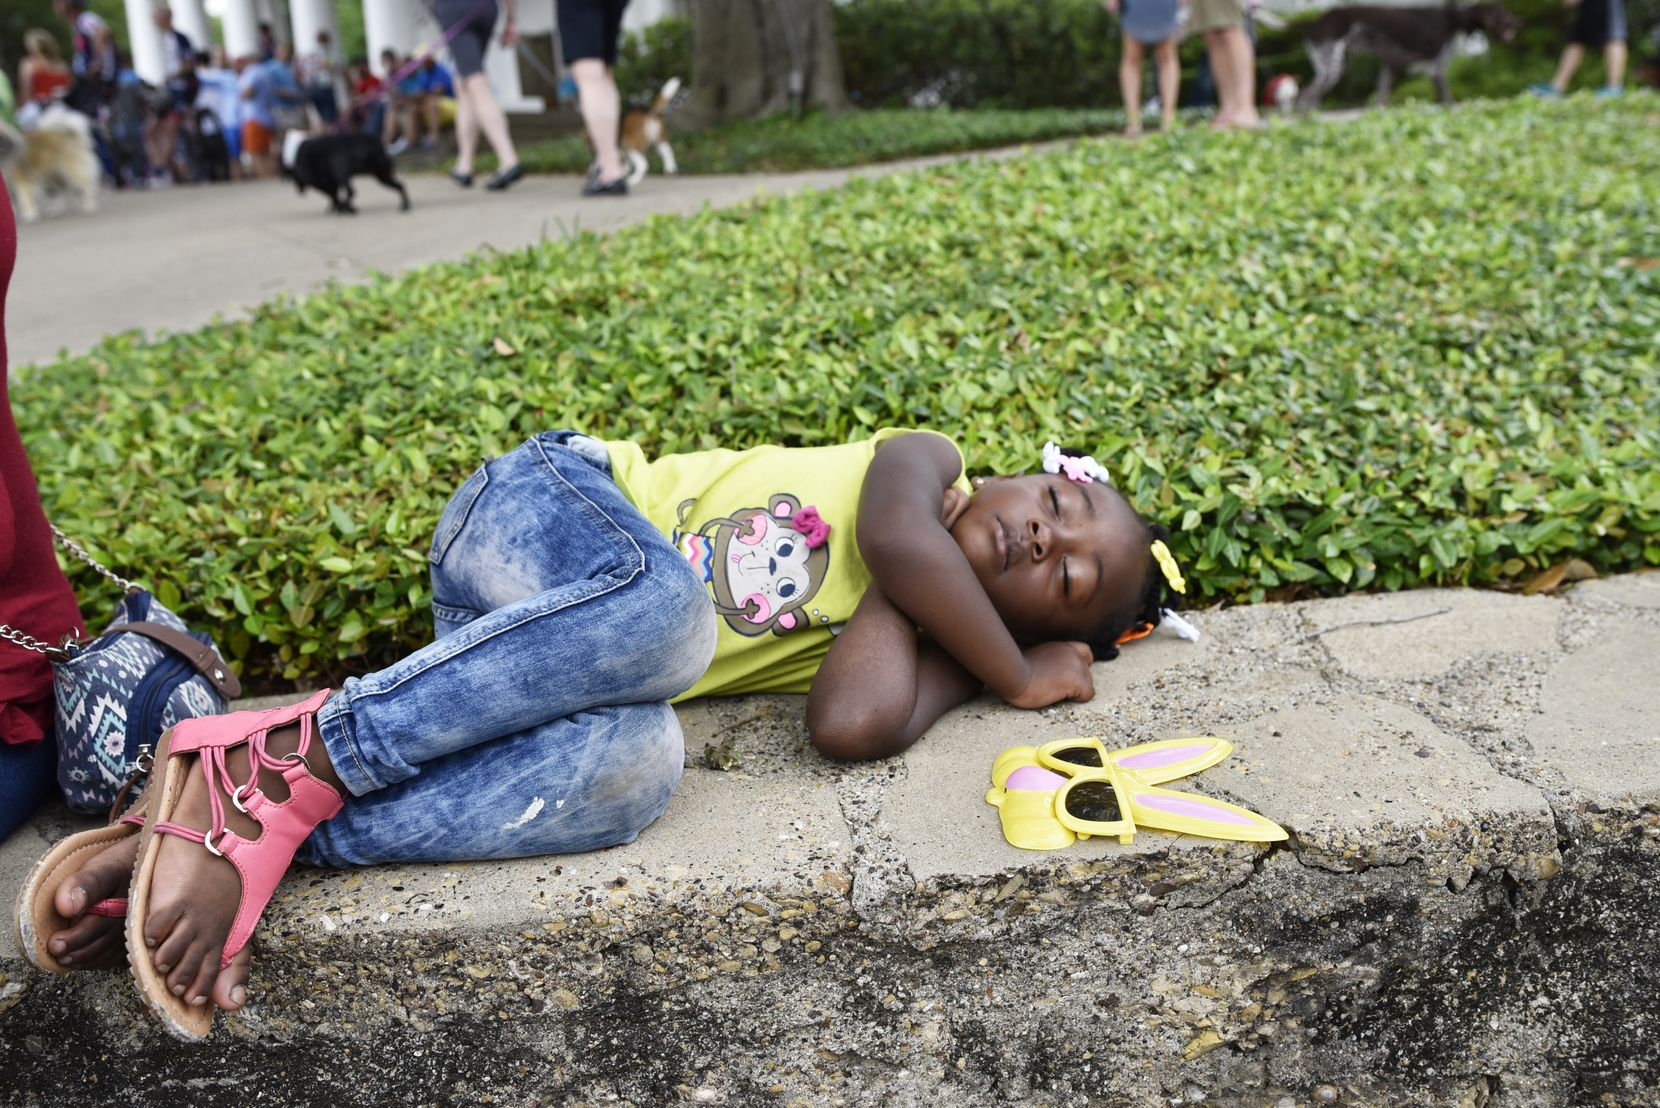 A'Niyah Thompson, 3, takes a nap after the pooch parade during the Easter in Lee Park event, hosted by the Lee Park and Arlington Hall Conservancy and the City of Dallas on April 16, 2017. The annual Easter event hosted a dog parade, food trucks, live music and plenty of family-friendly activities.